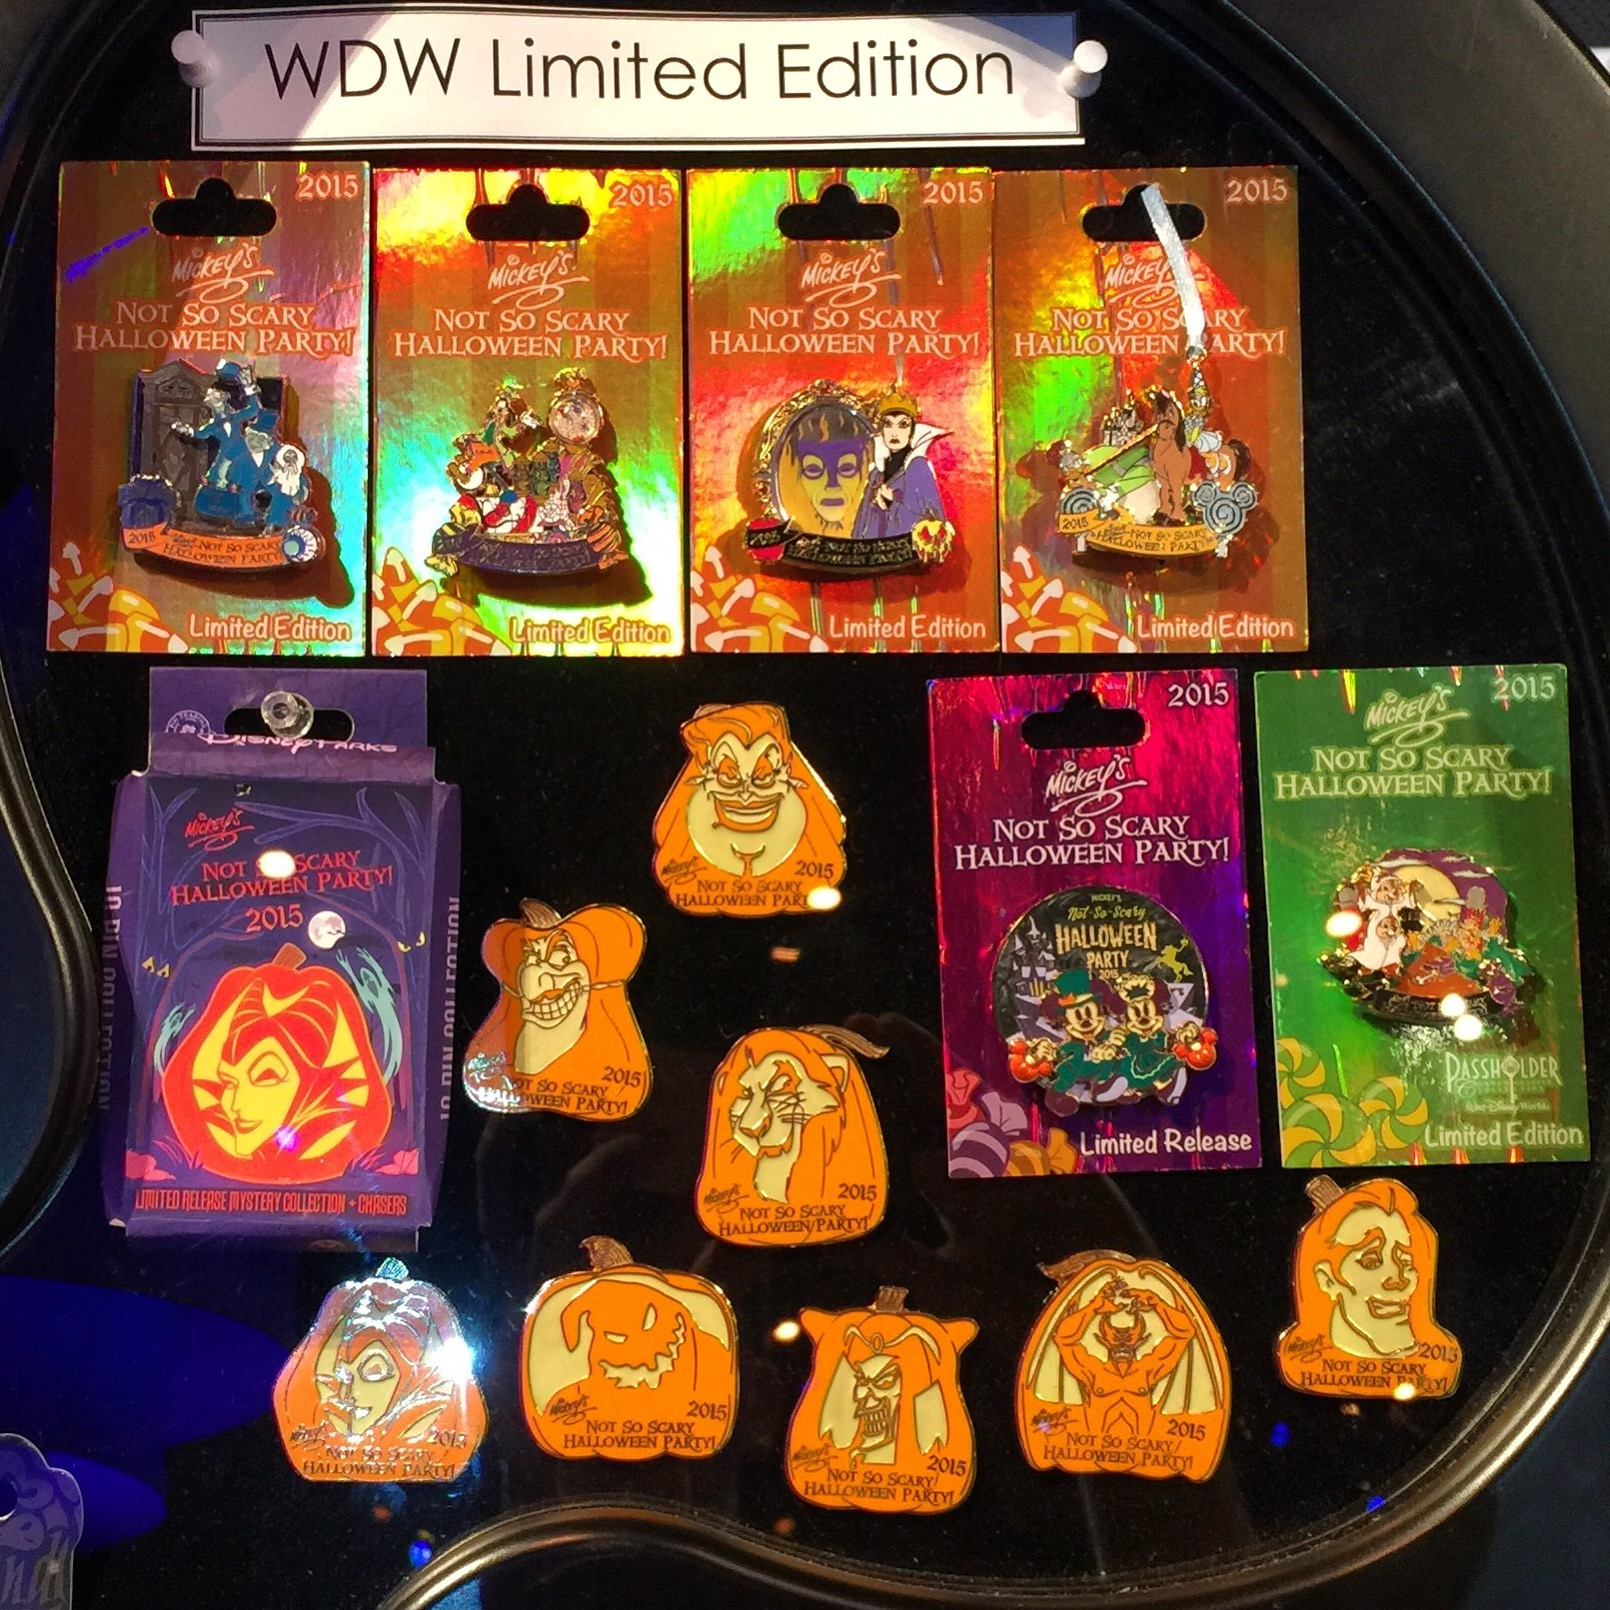 Mickeys Not So Scary Halloween Party 2020 Pins 2015 Mickey's Not So Scary Halloween Party Pins   Disney